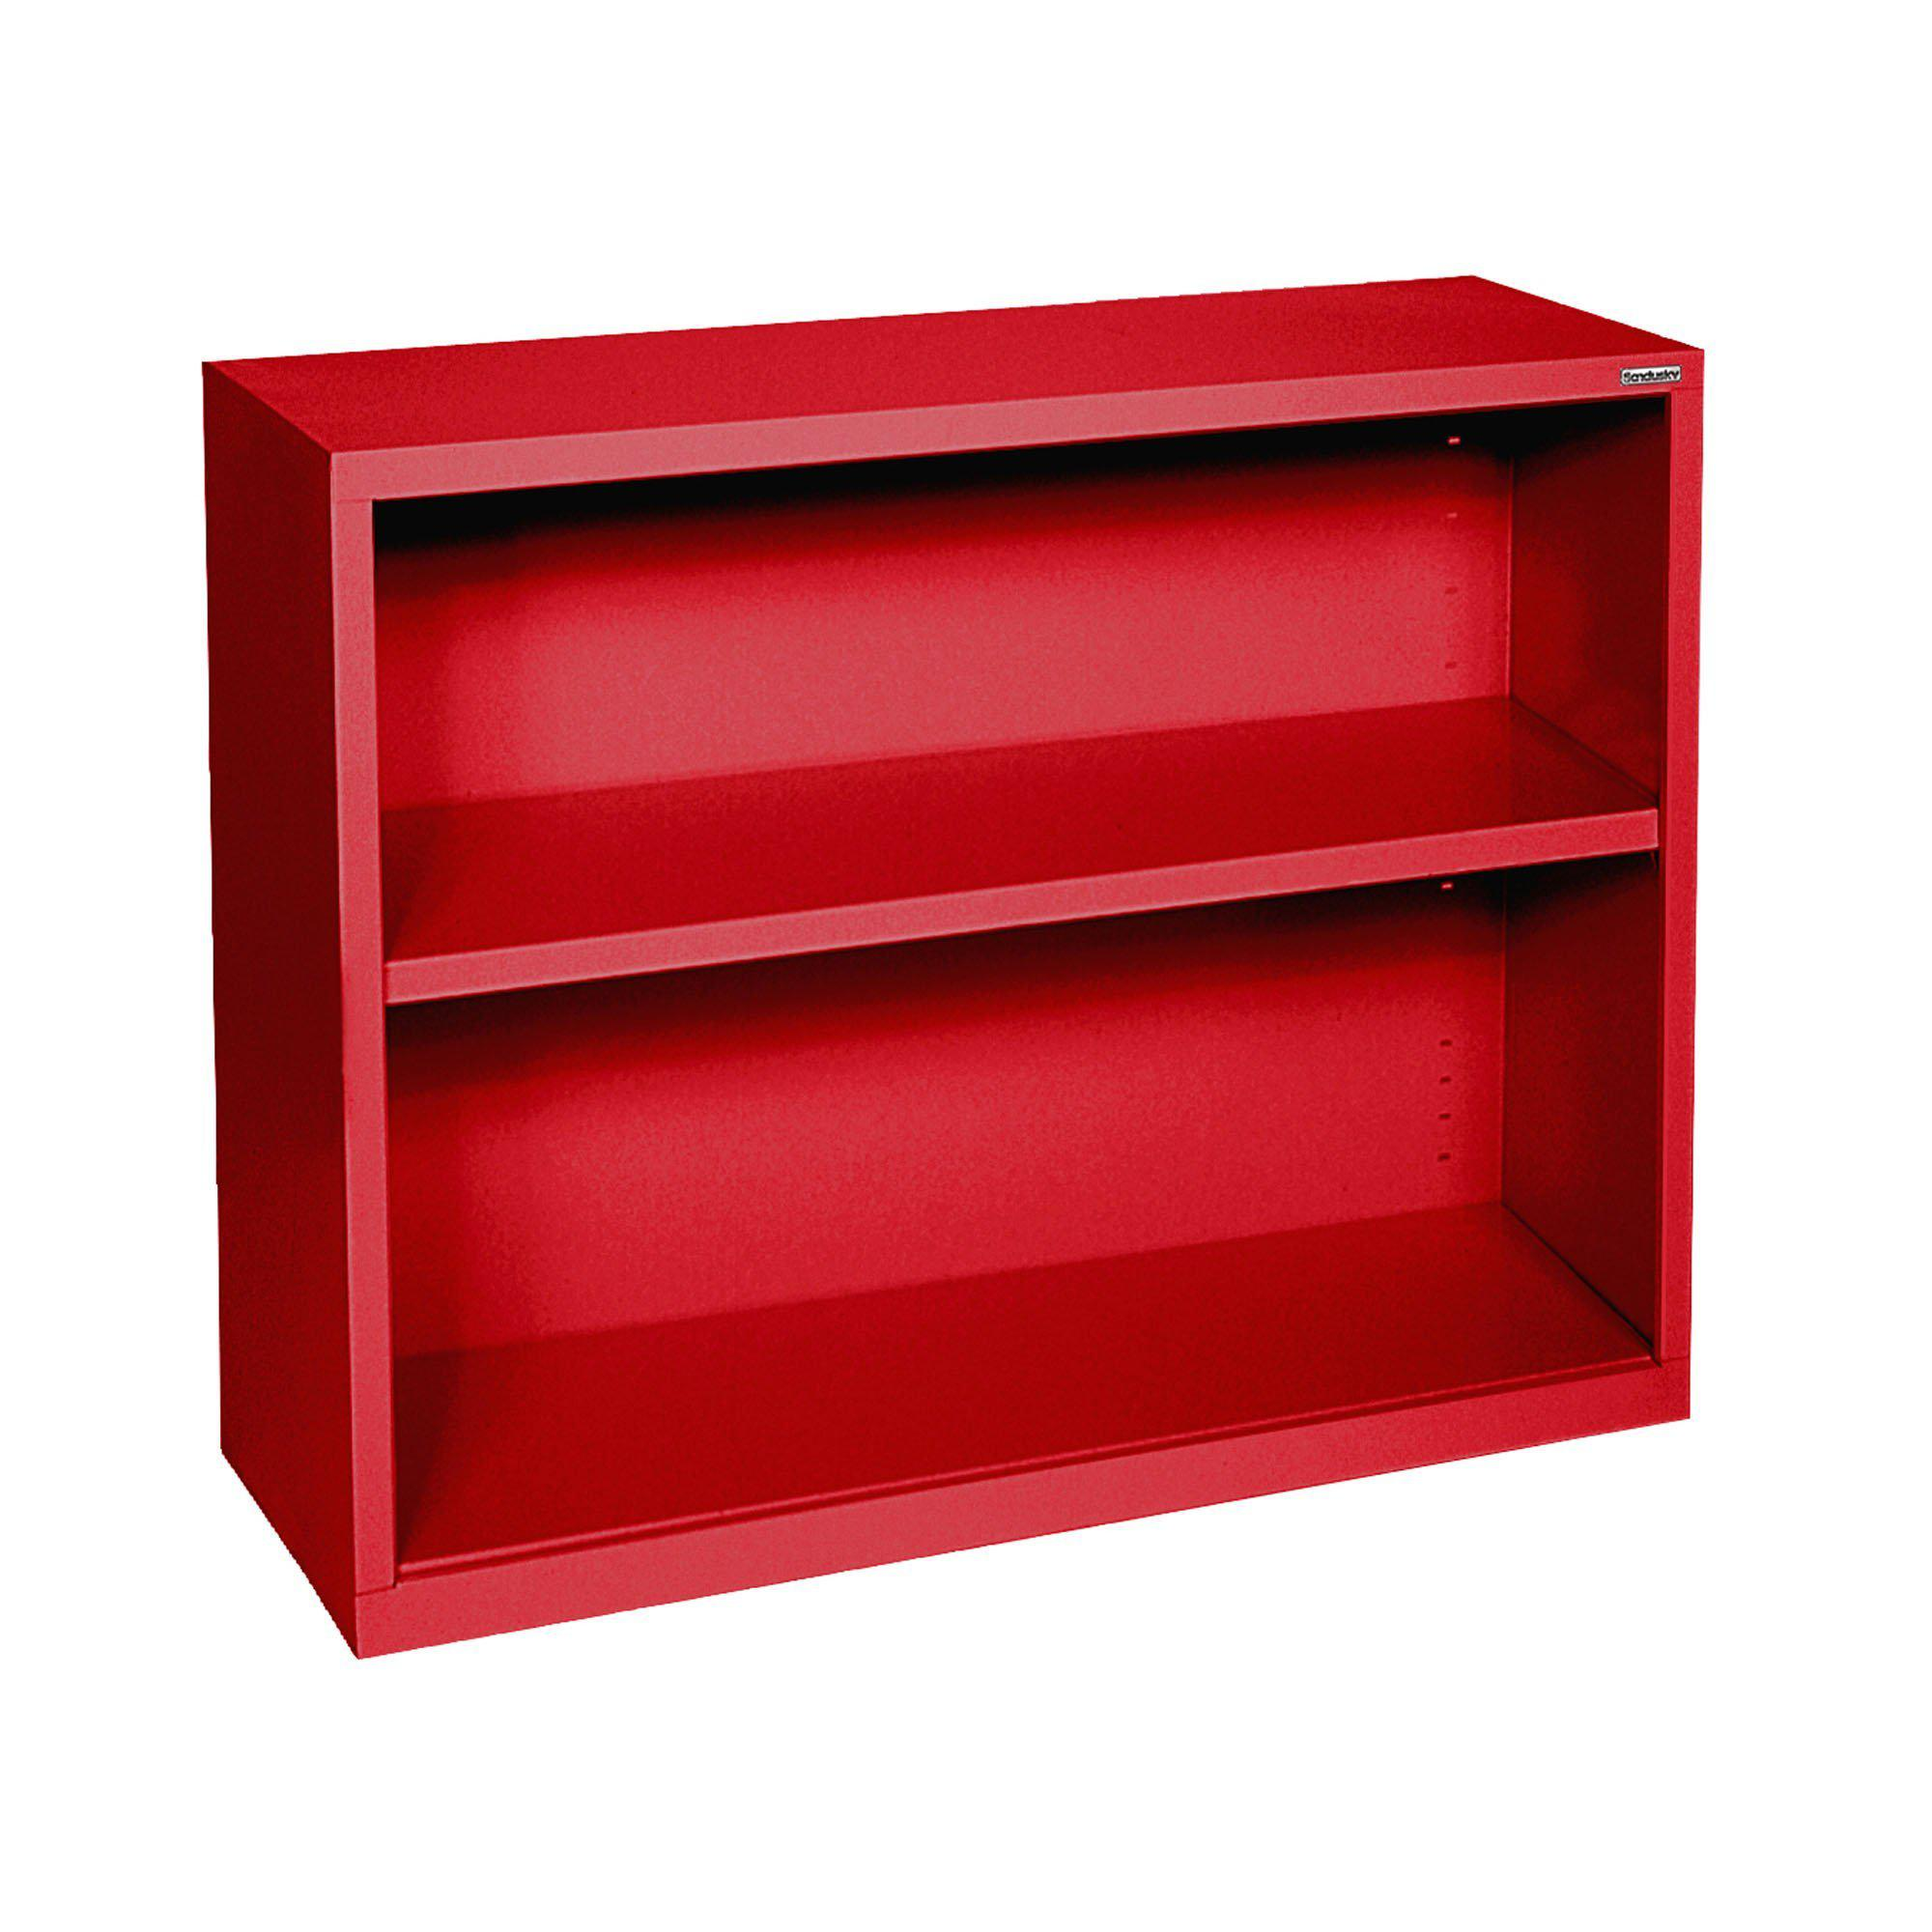 Elite Series Welded Steel Bookcase, 1 Shelf and Bottom Shelf, 34 x 12 x 30, Red